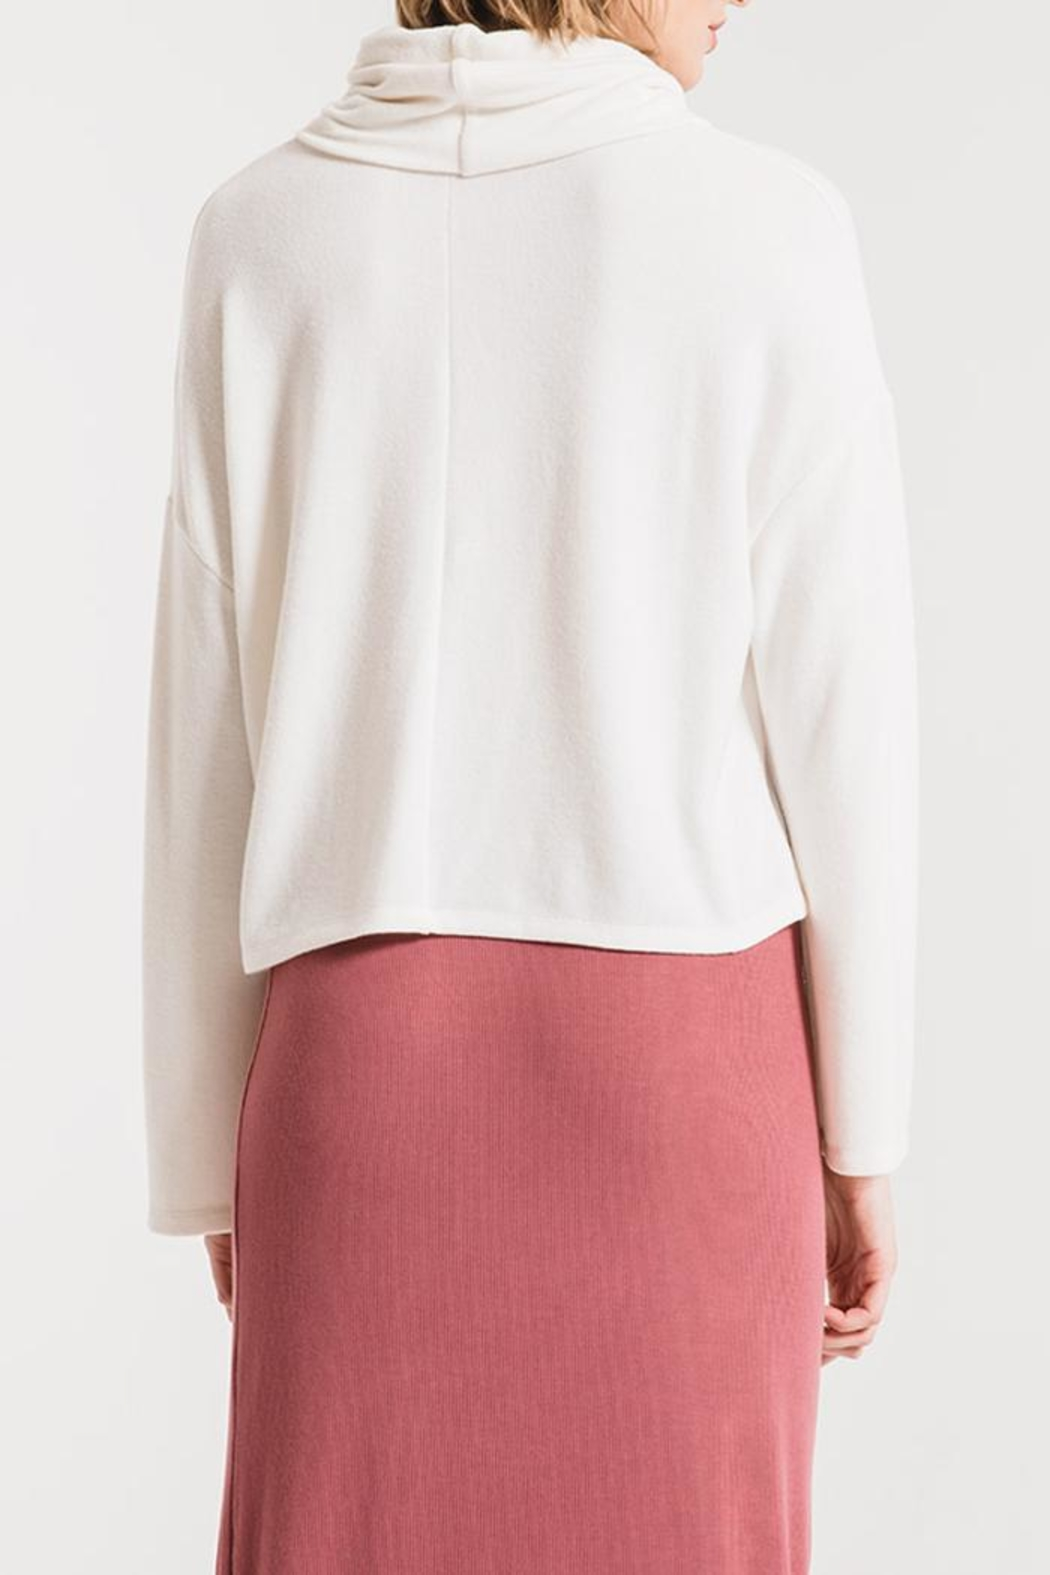 z supply Mock Neck Sweater - Side Cropped Image